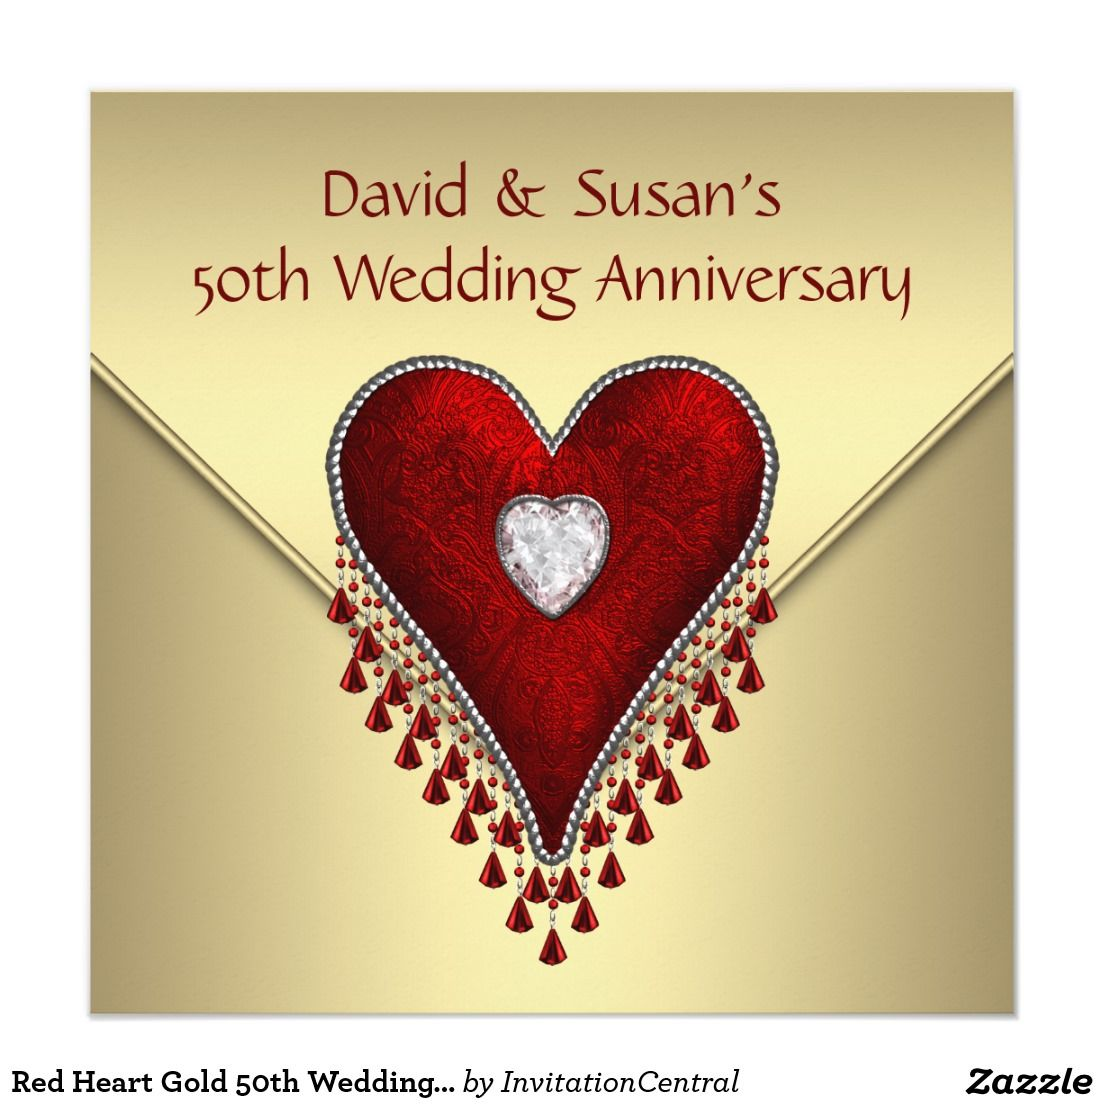 Red Heart Gold 50th Wedding Anniversary Party Invitation | Pinterest ...